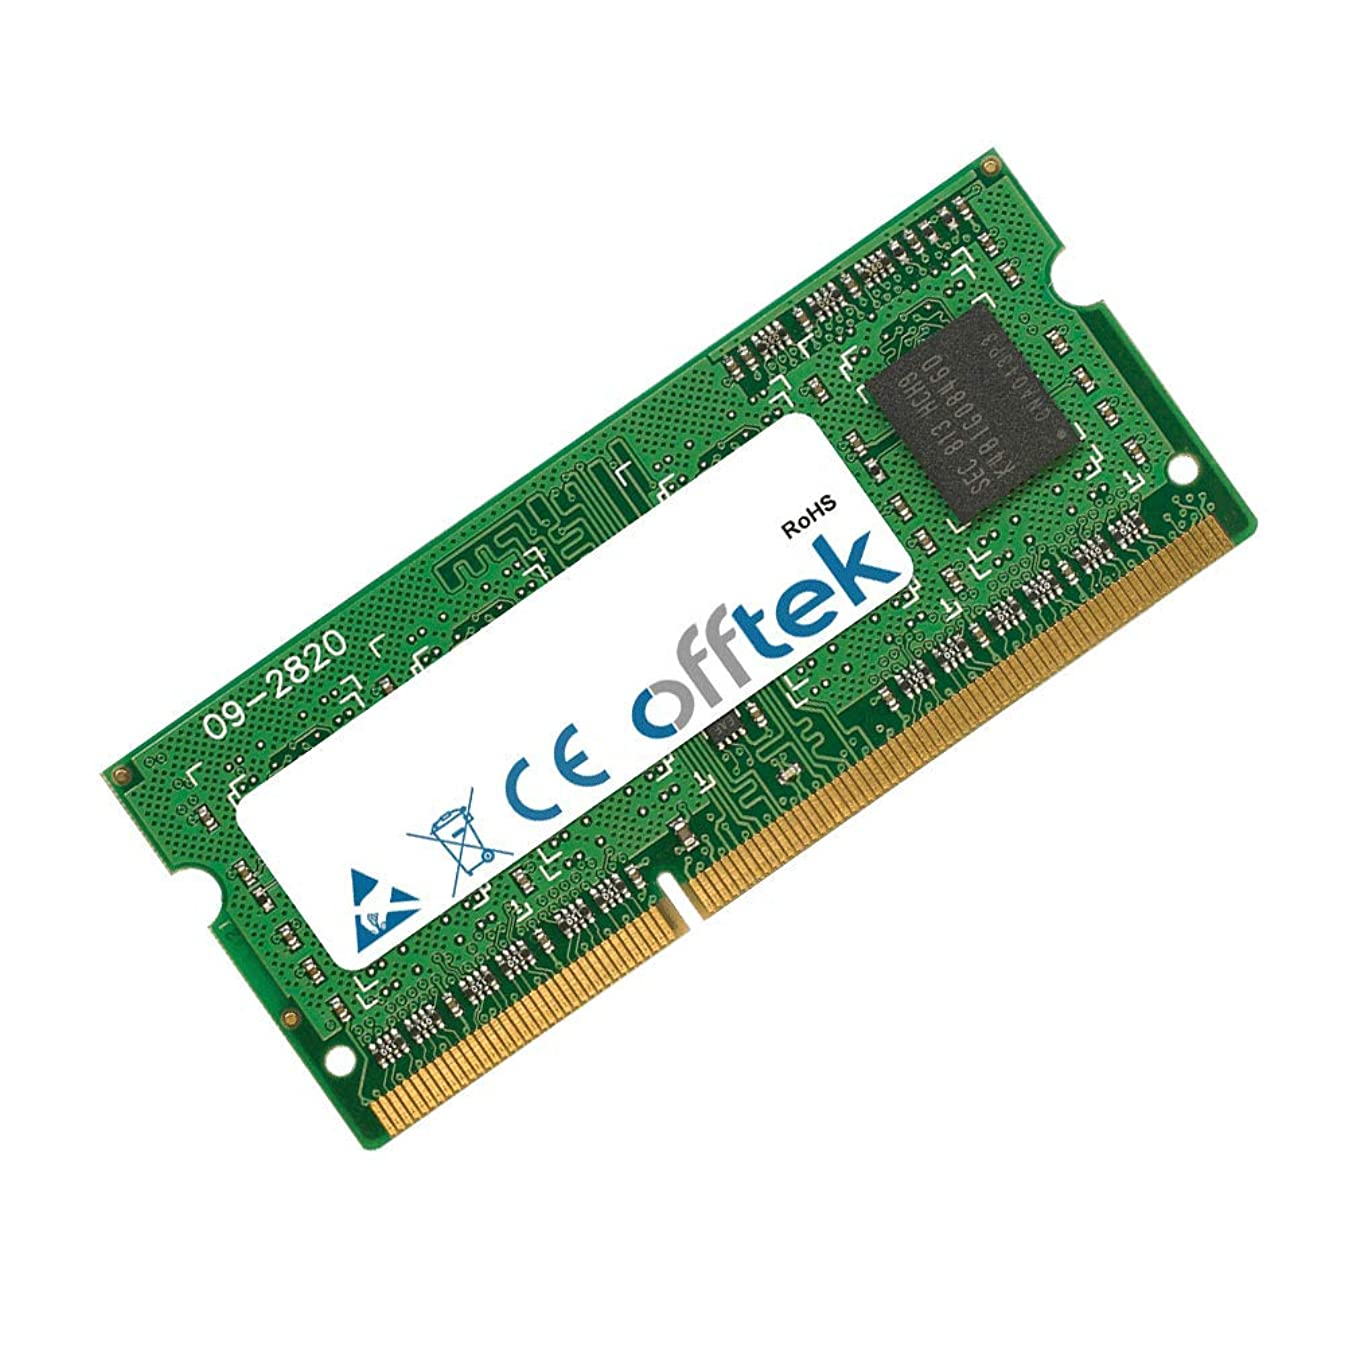 4GB RAM Memory for Sony Vaio VPCF126FM (DDR3-10600) - Laptop Memory Upgrade